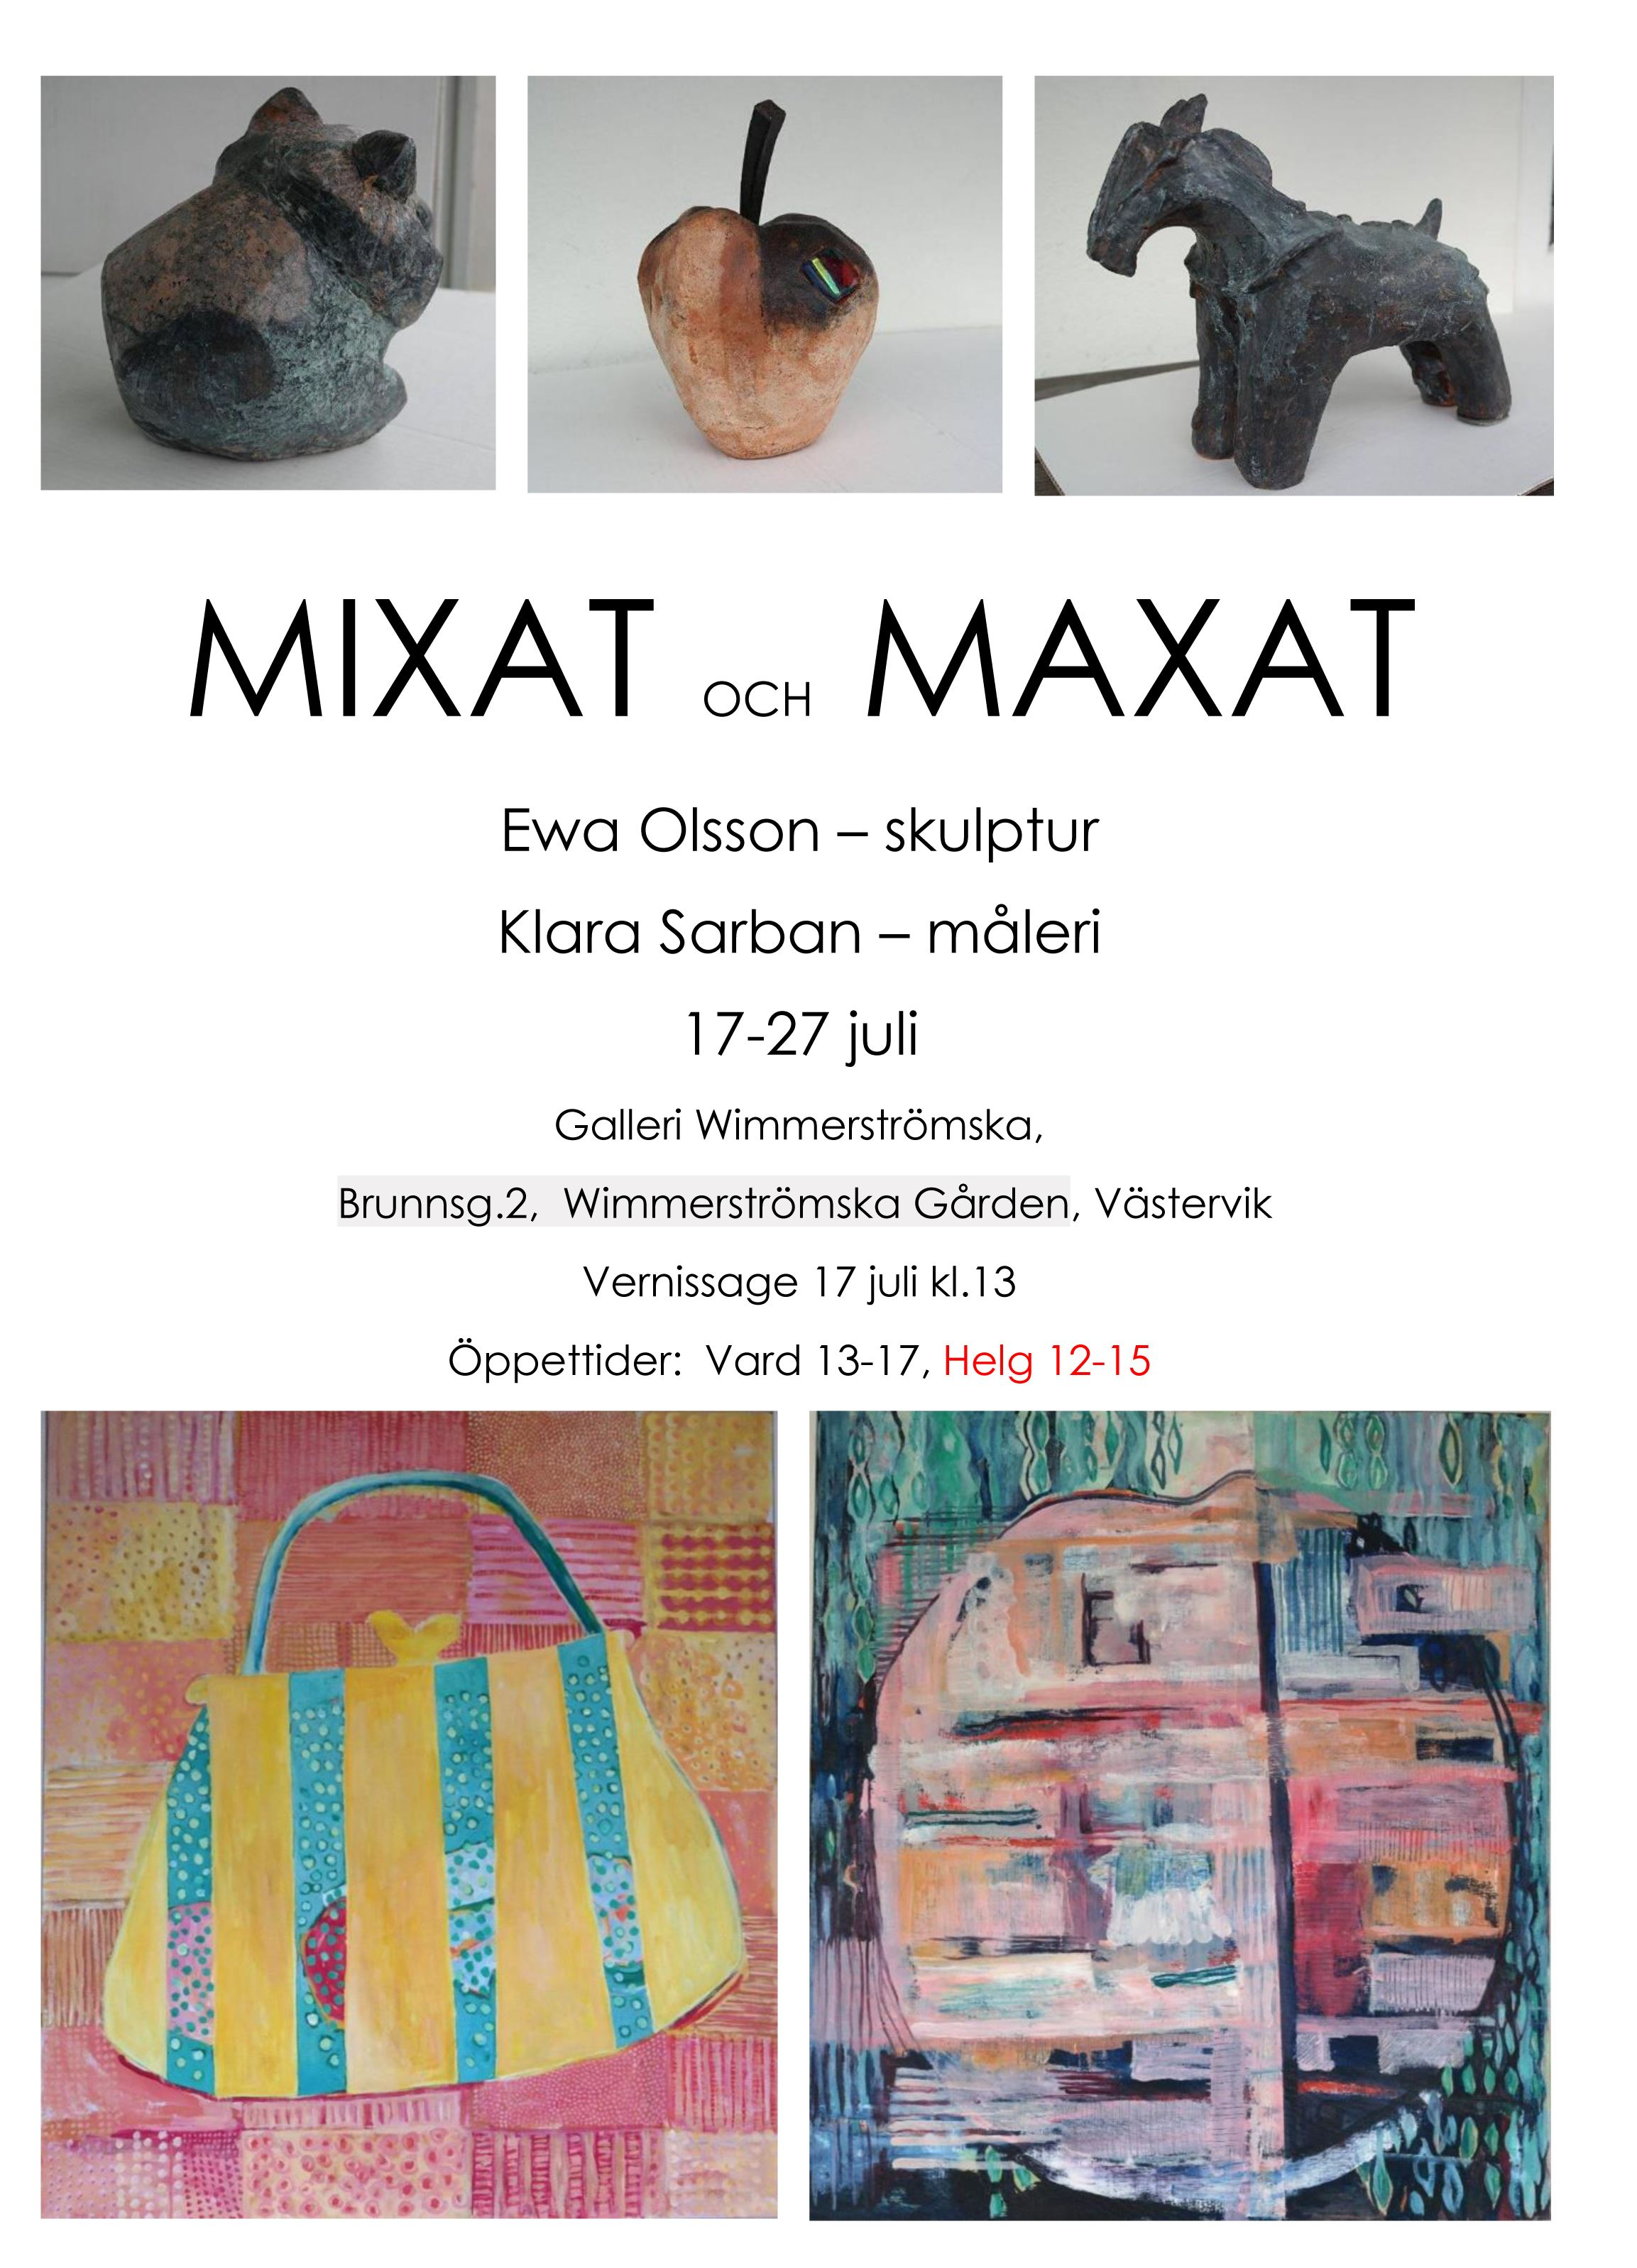 Art Exhibition at Gallery Wimmerström: Mixat och Maxat